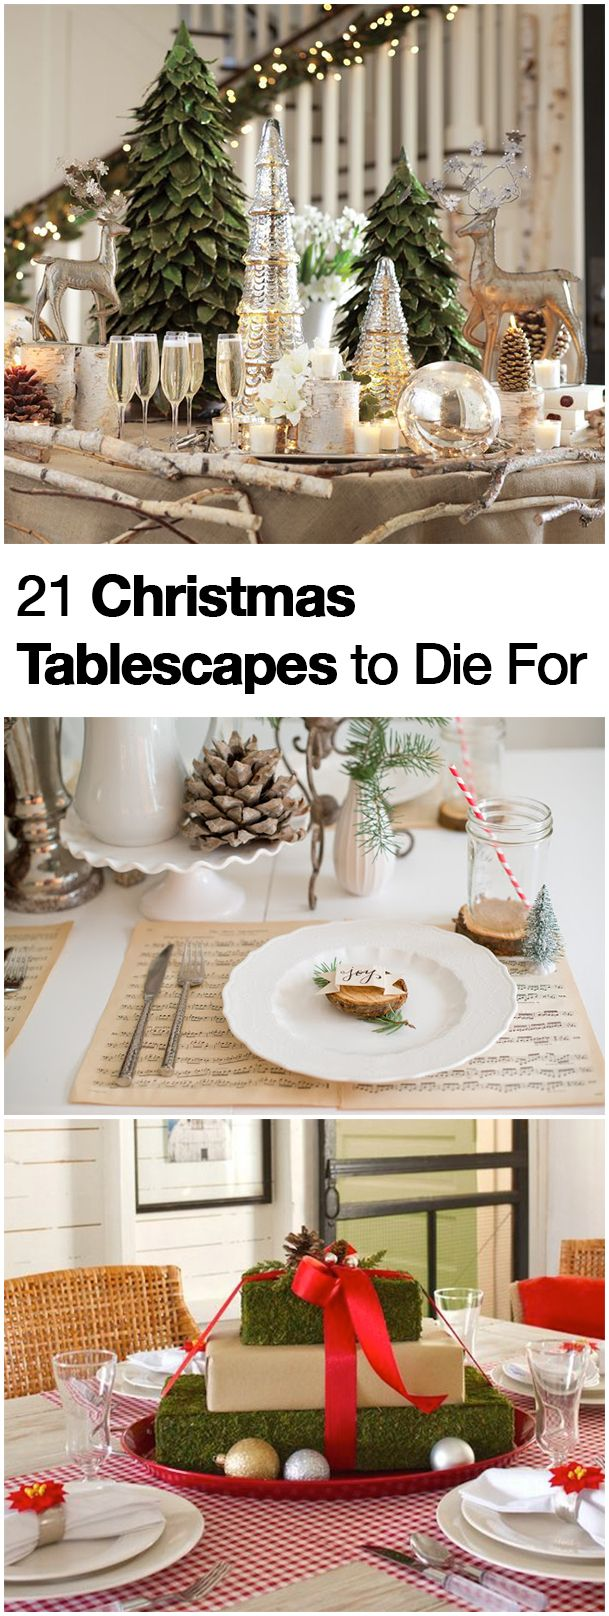 21 christmas table decorations and holiday settings to die for - Holiday Table Decorations Christmas